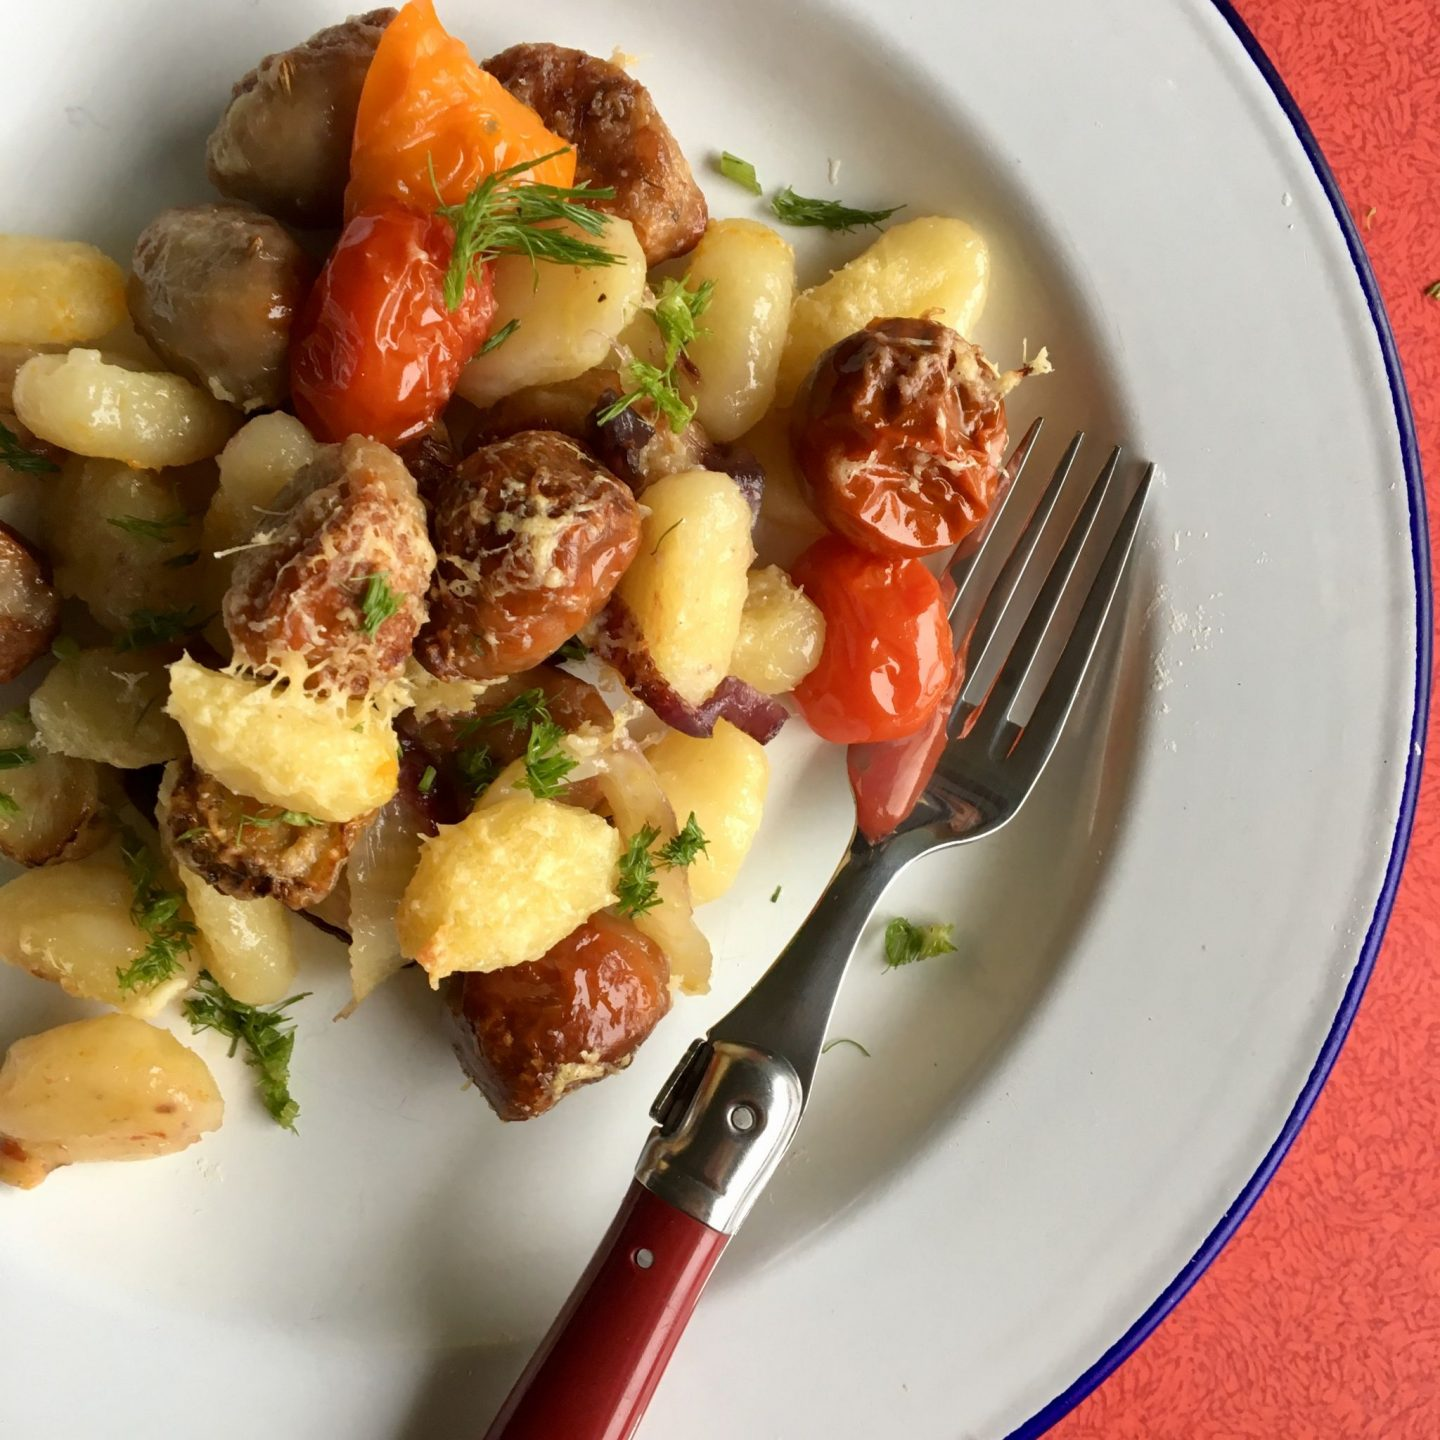 Roasted Gnocchi With Sausage And Cherry Tomatoes